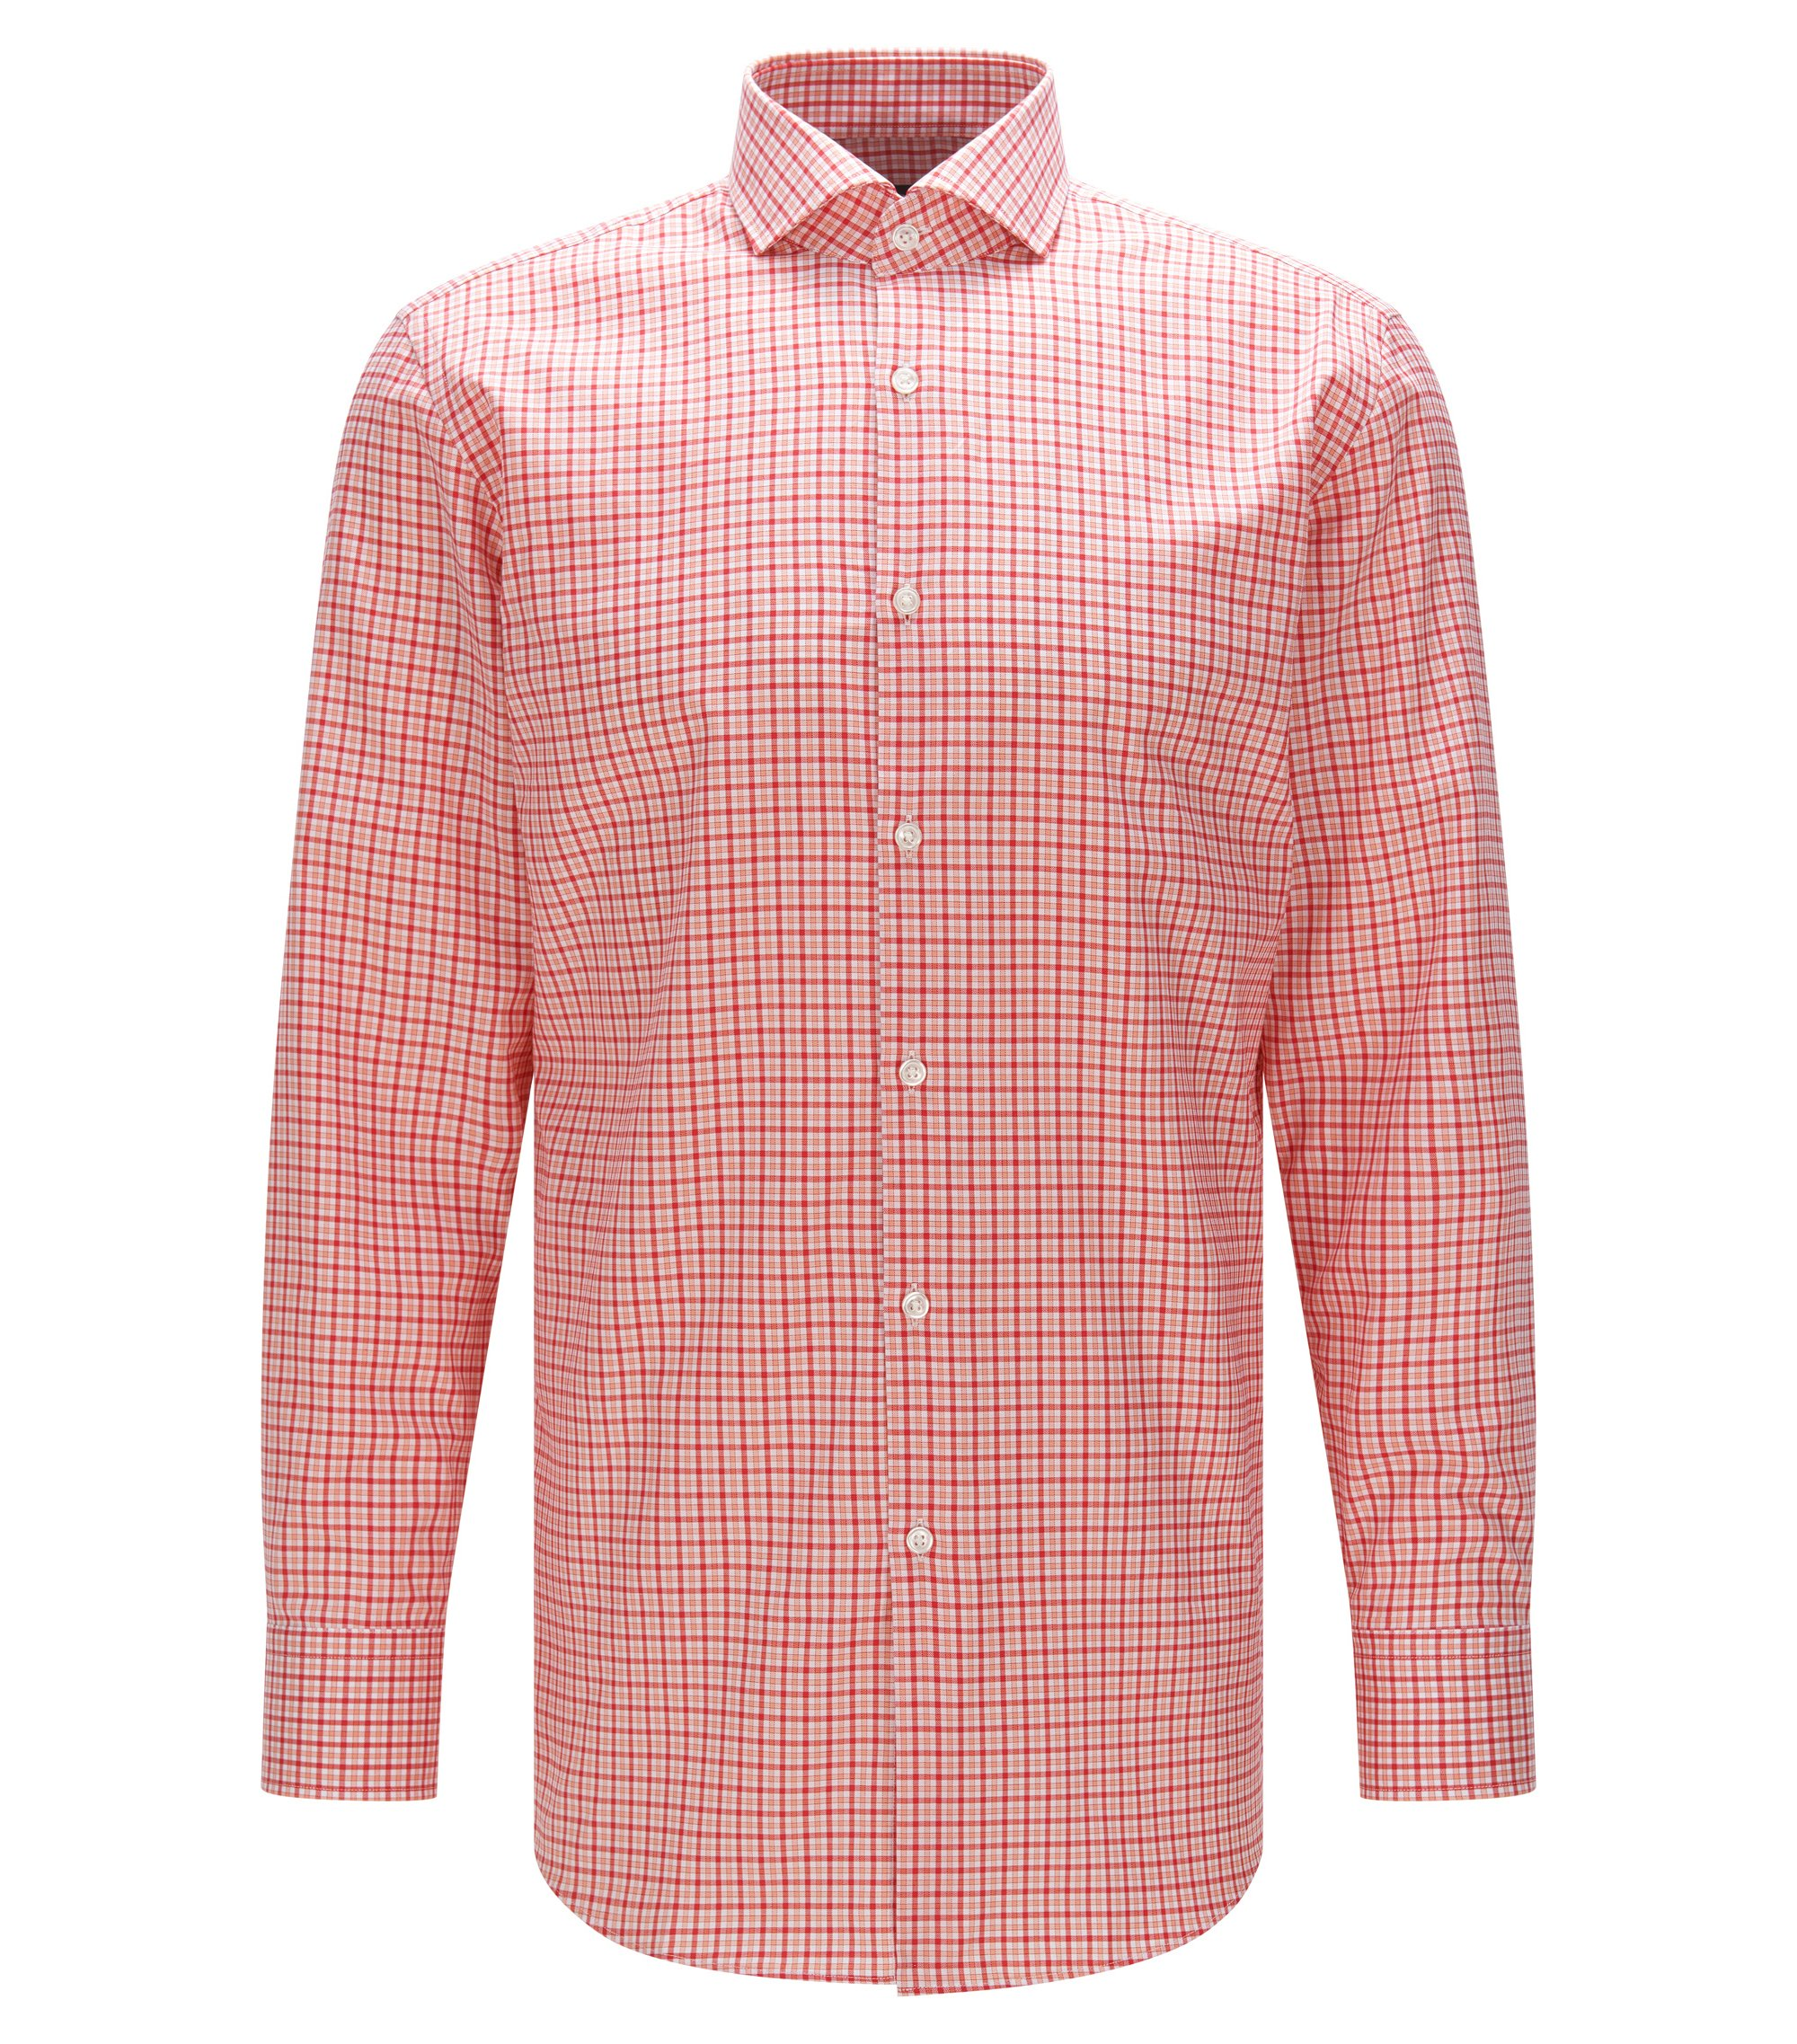 Plaid Cotton Dress Shirt, Sharp Fit | Mark US, Red